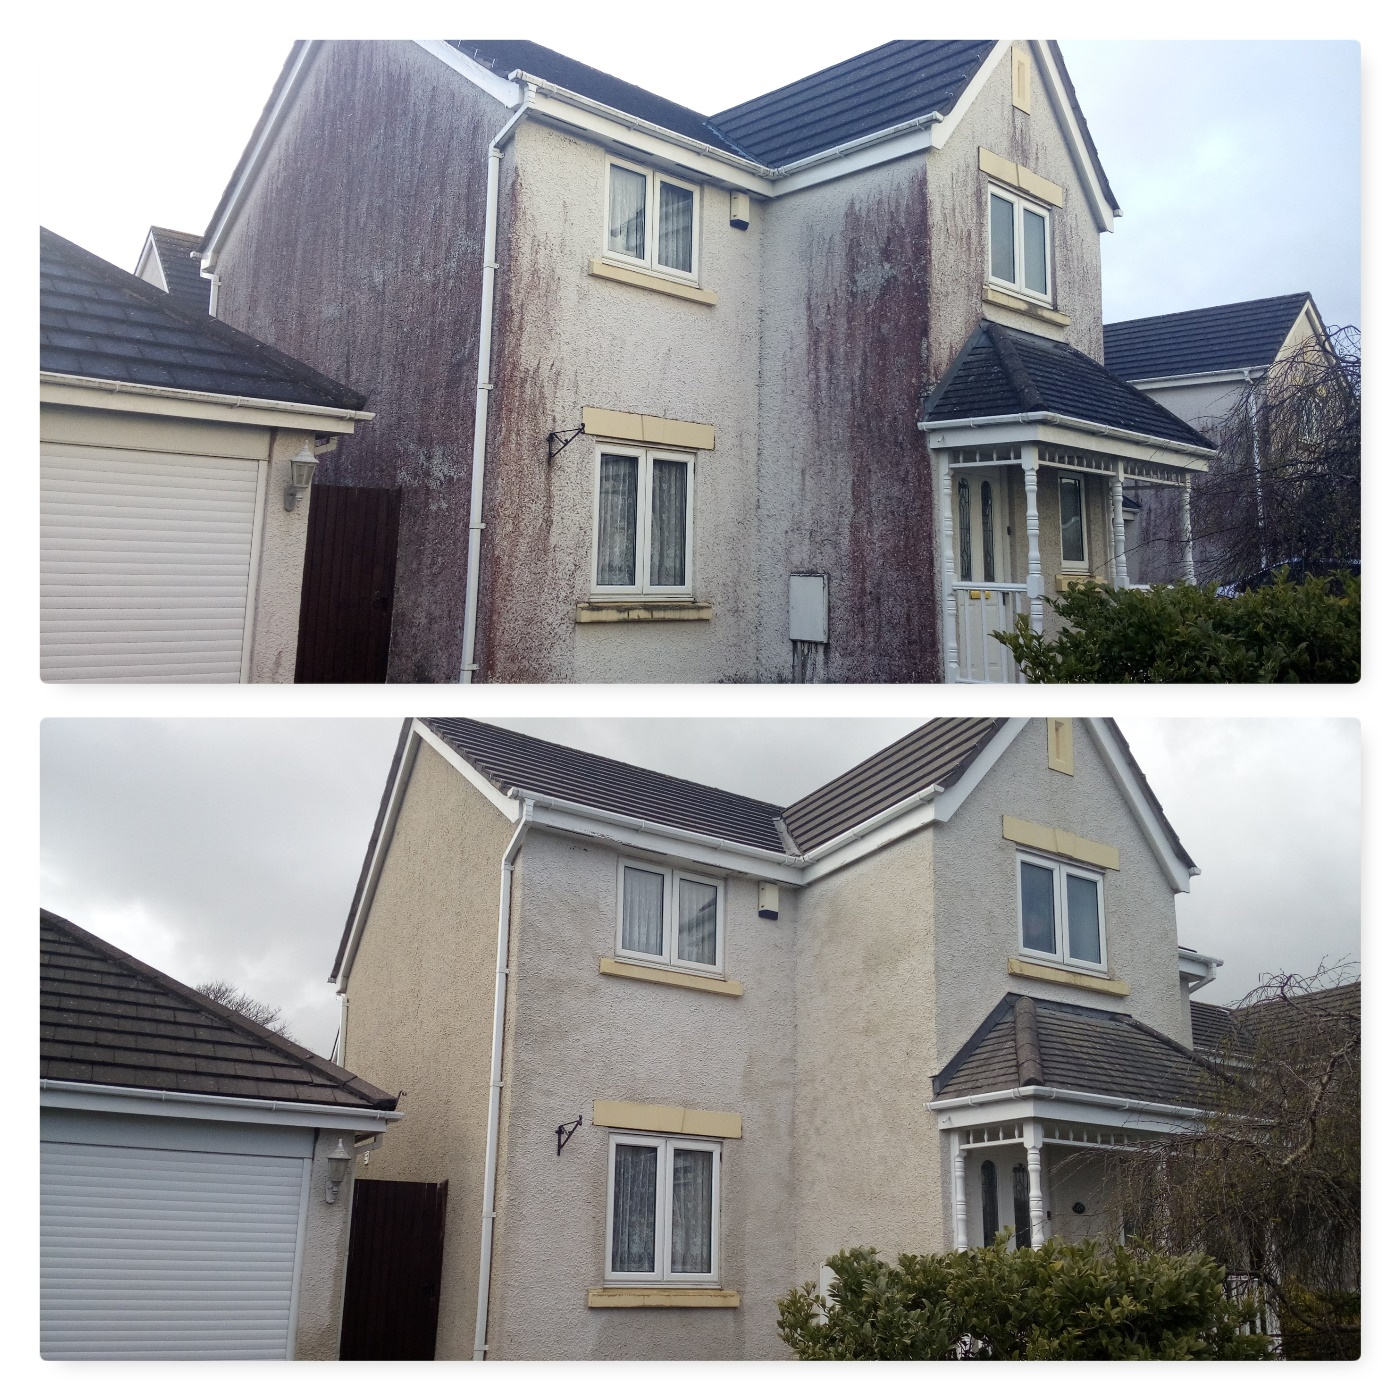 image of before and after cleaning of red stains on render www.cleaning-service.uk.com lake district